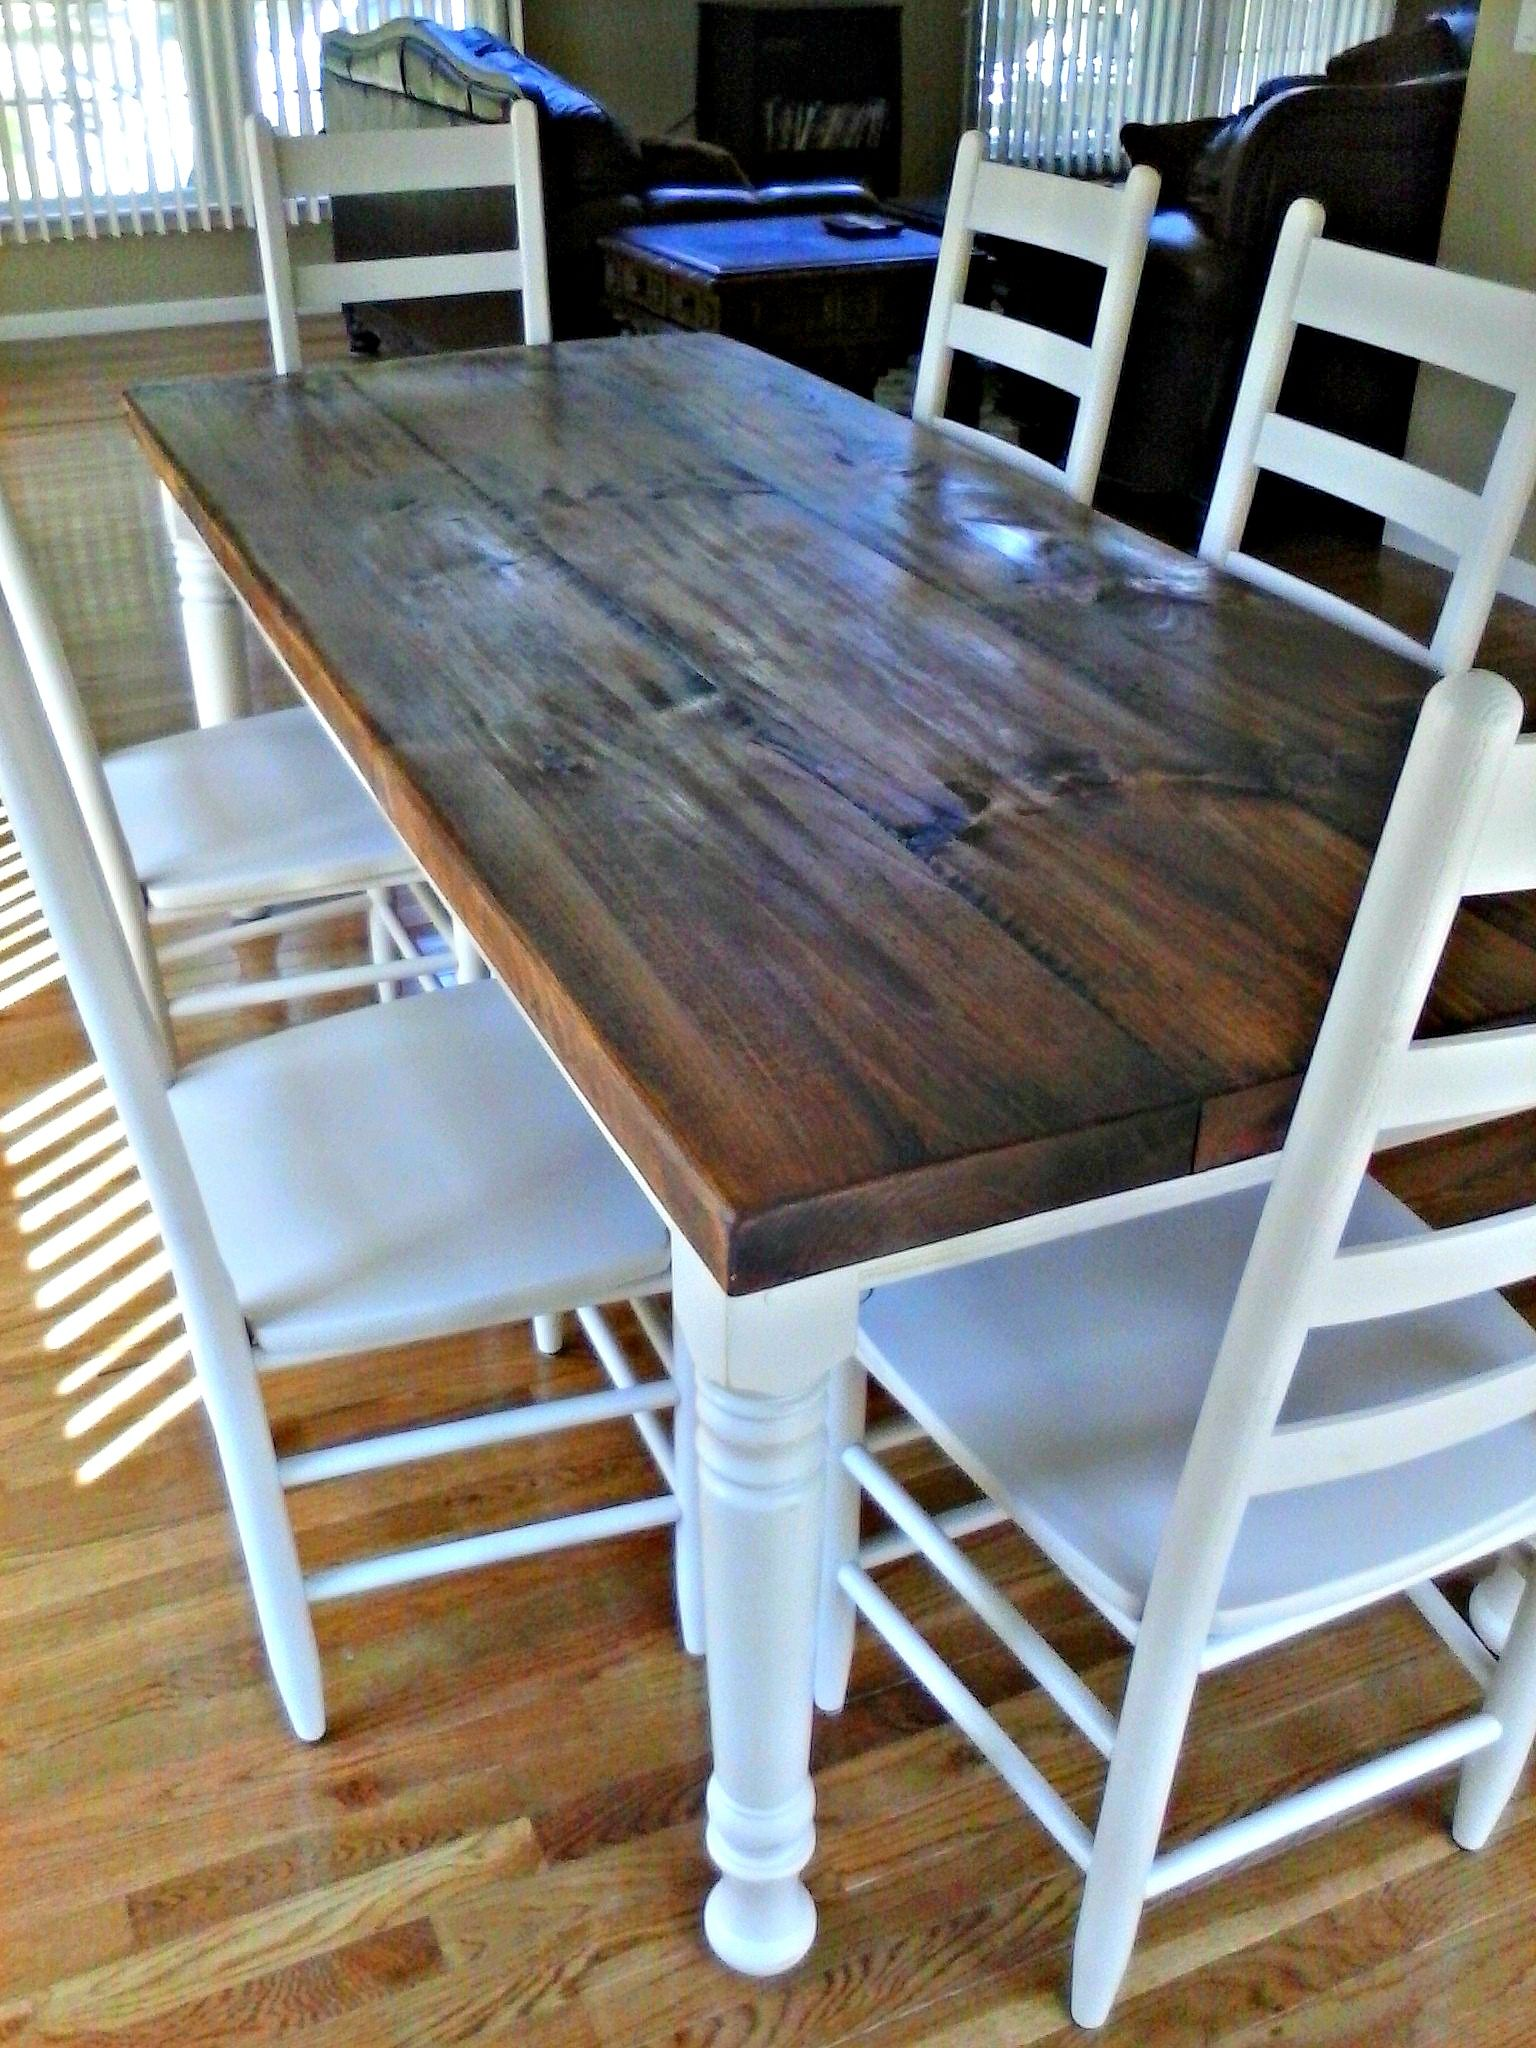 36 X 84 Rustic Pine Farm Table With Hand Scraping Wormholes And